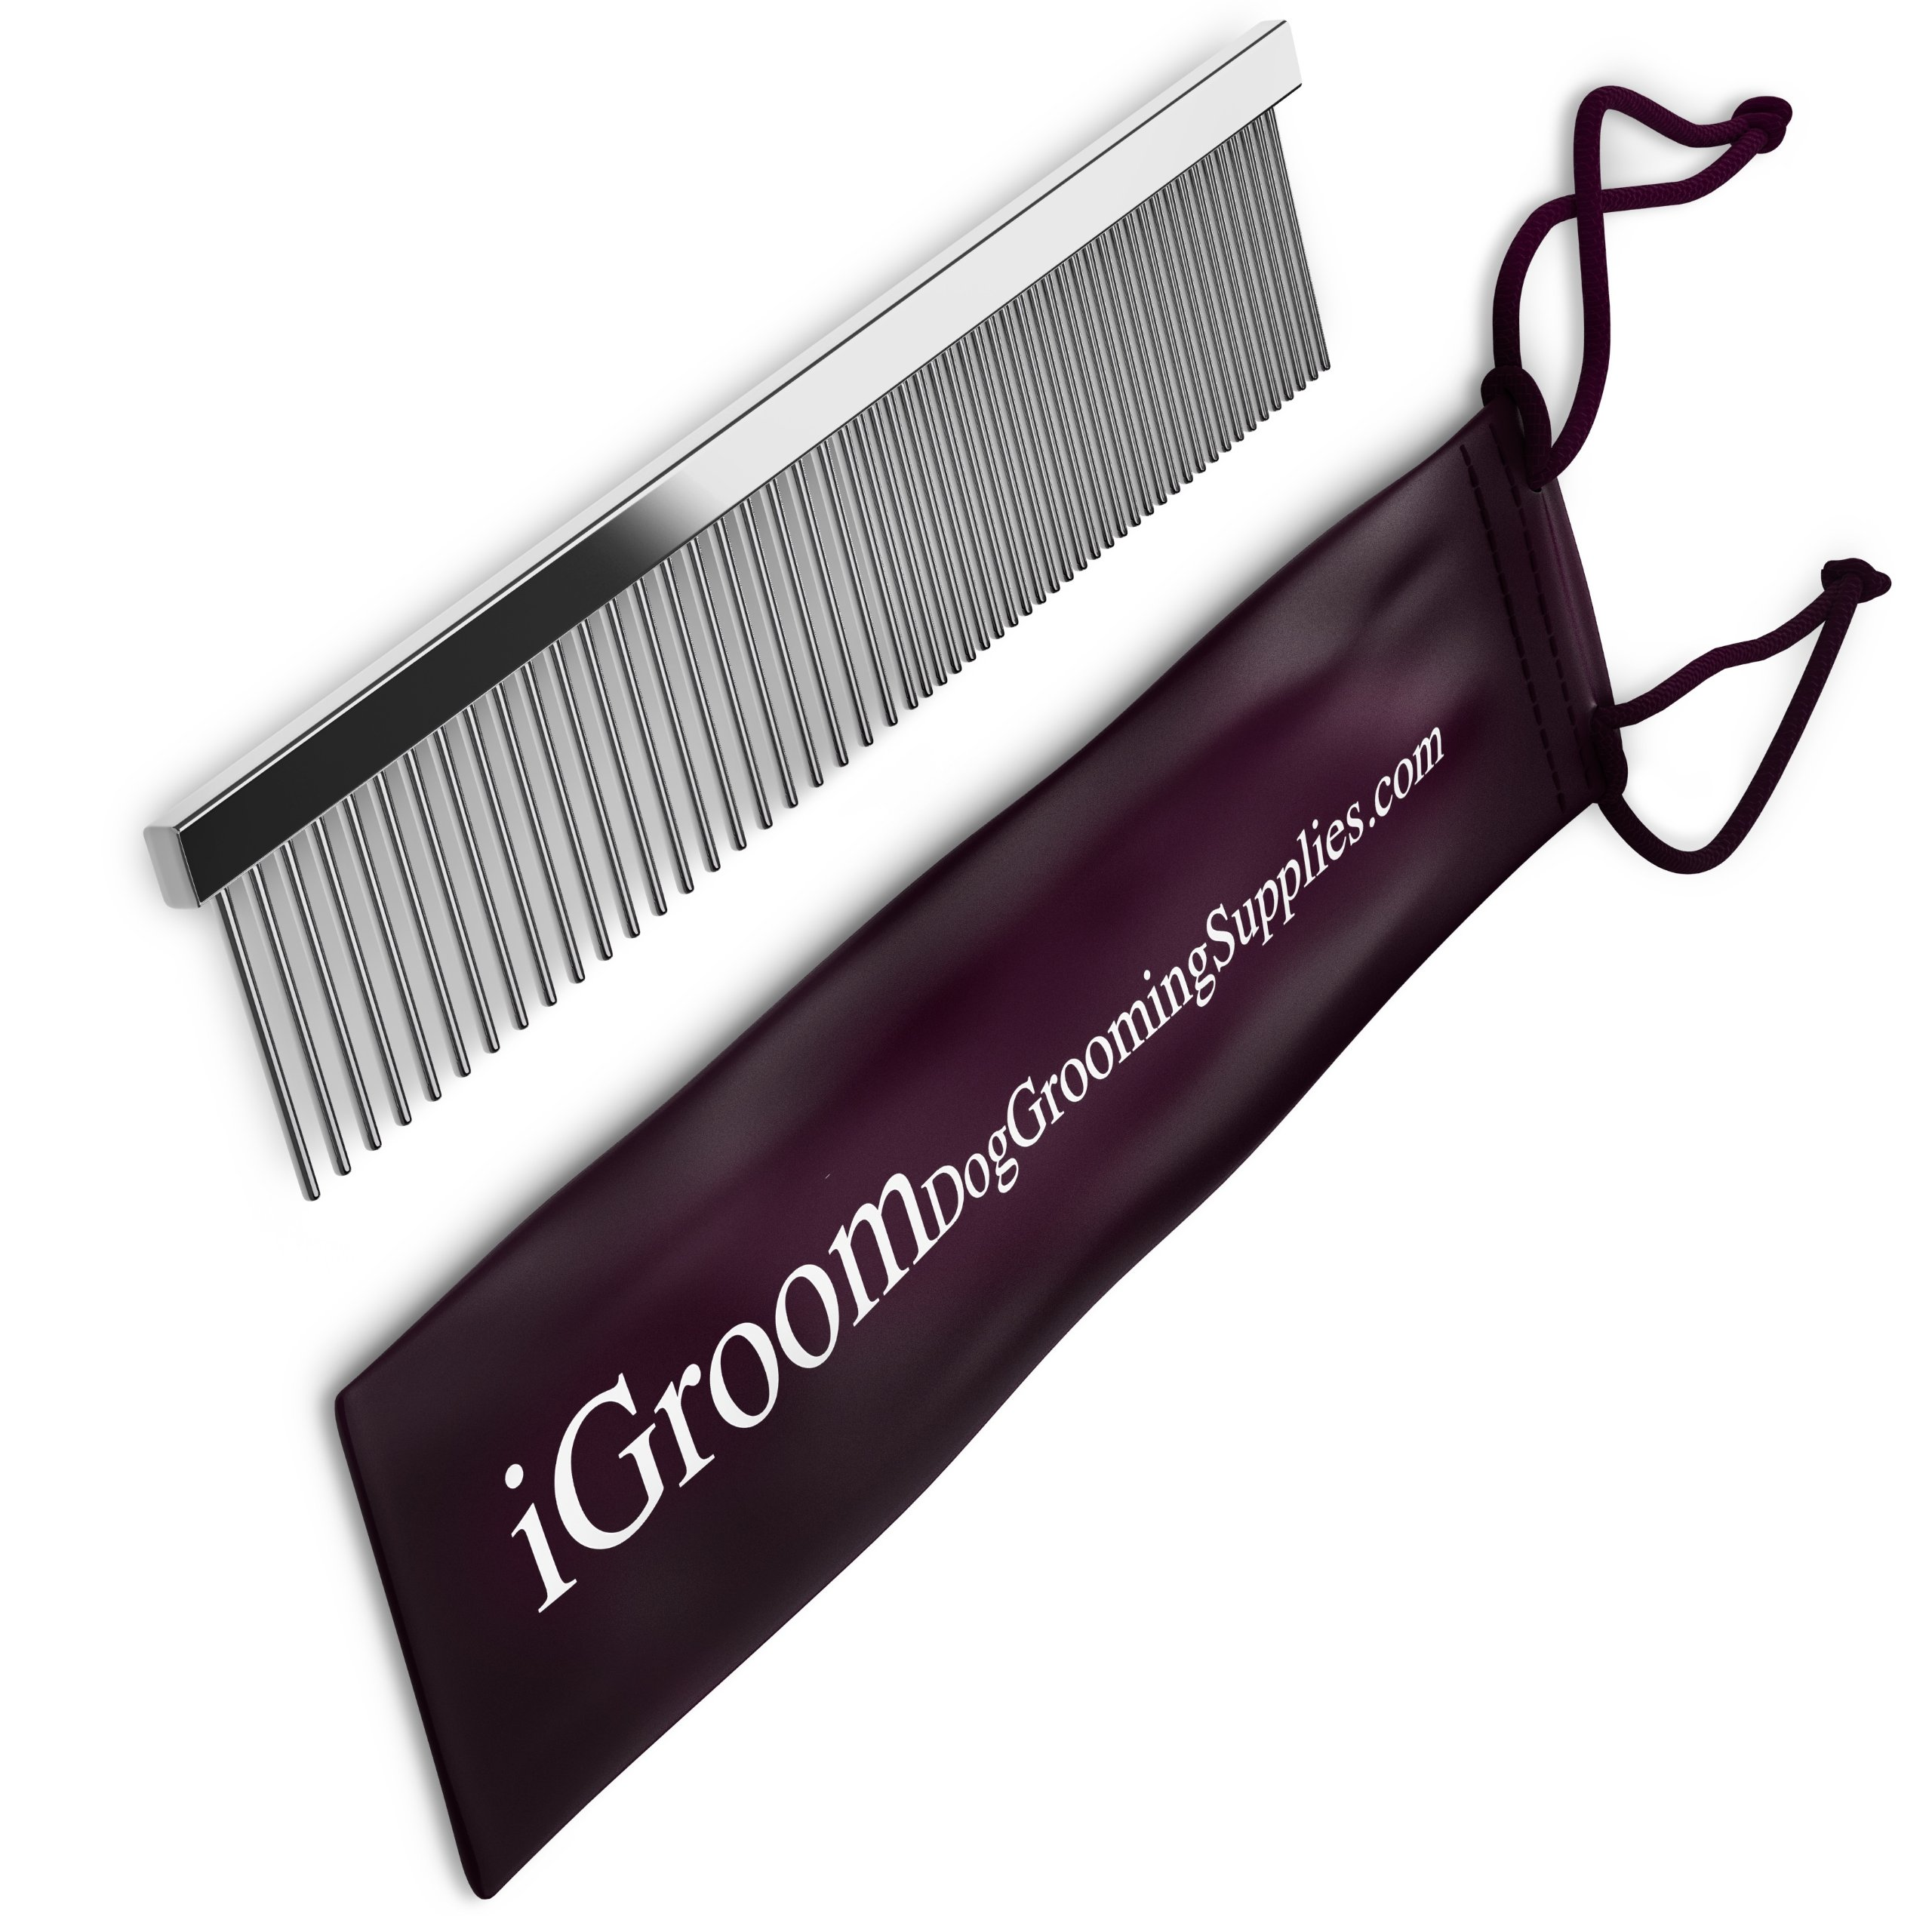 On Sale - Durable Steel Dog Grooming Comb And Shedding Tool,, Pet Supplies Free 65-page Guide